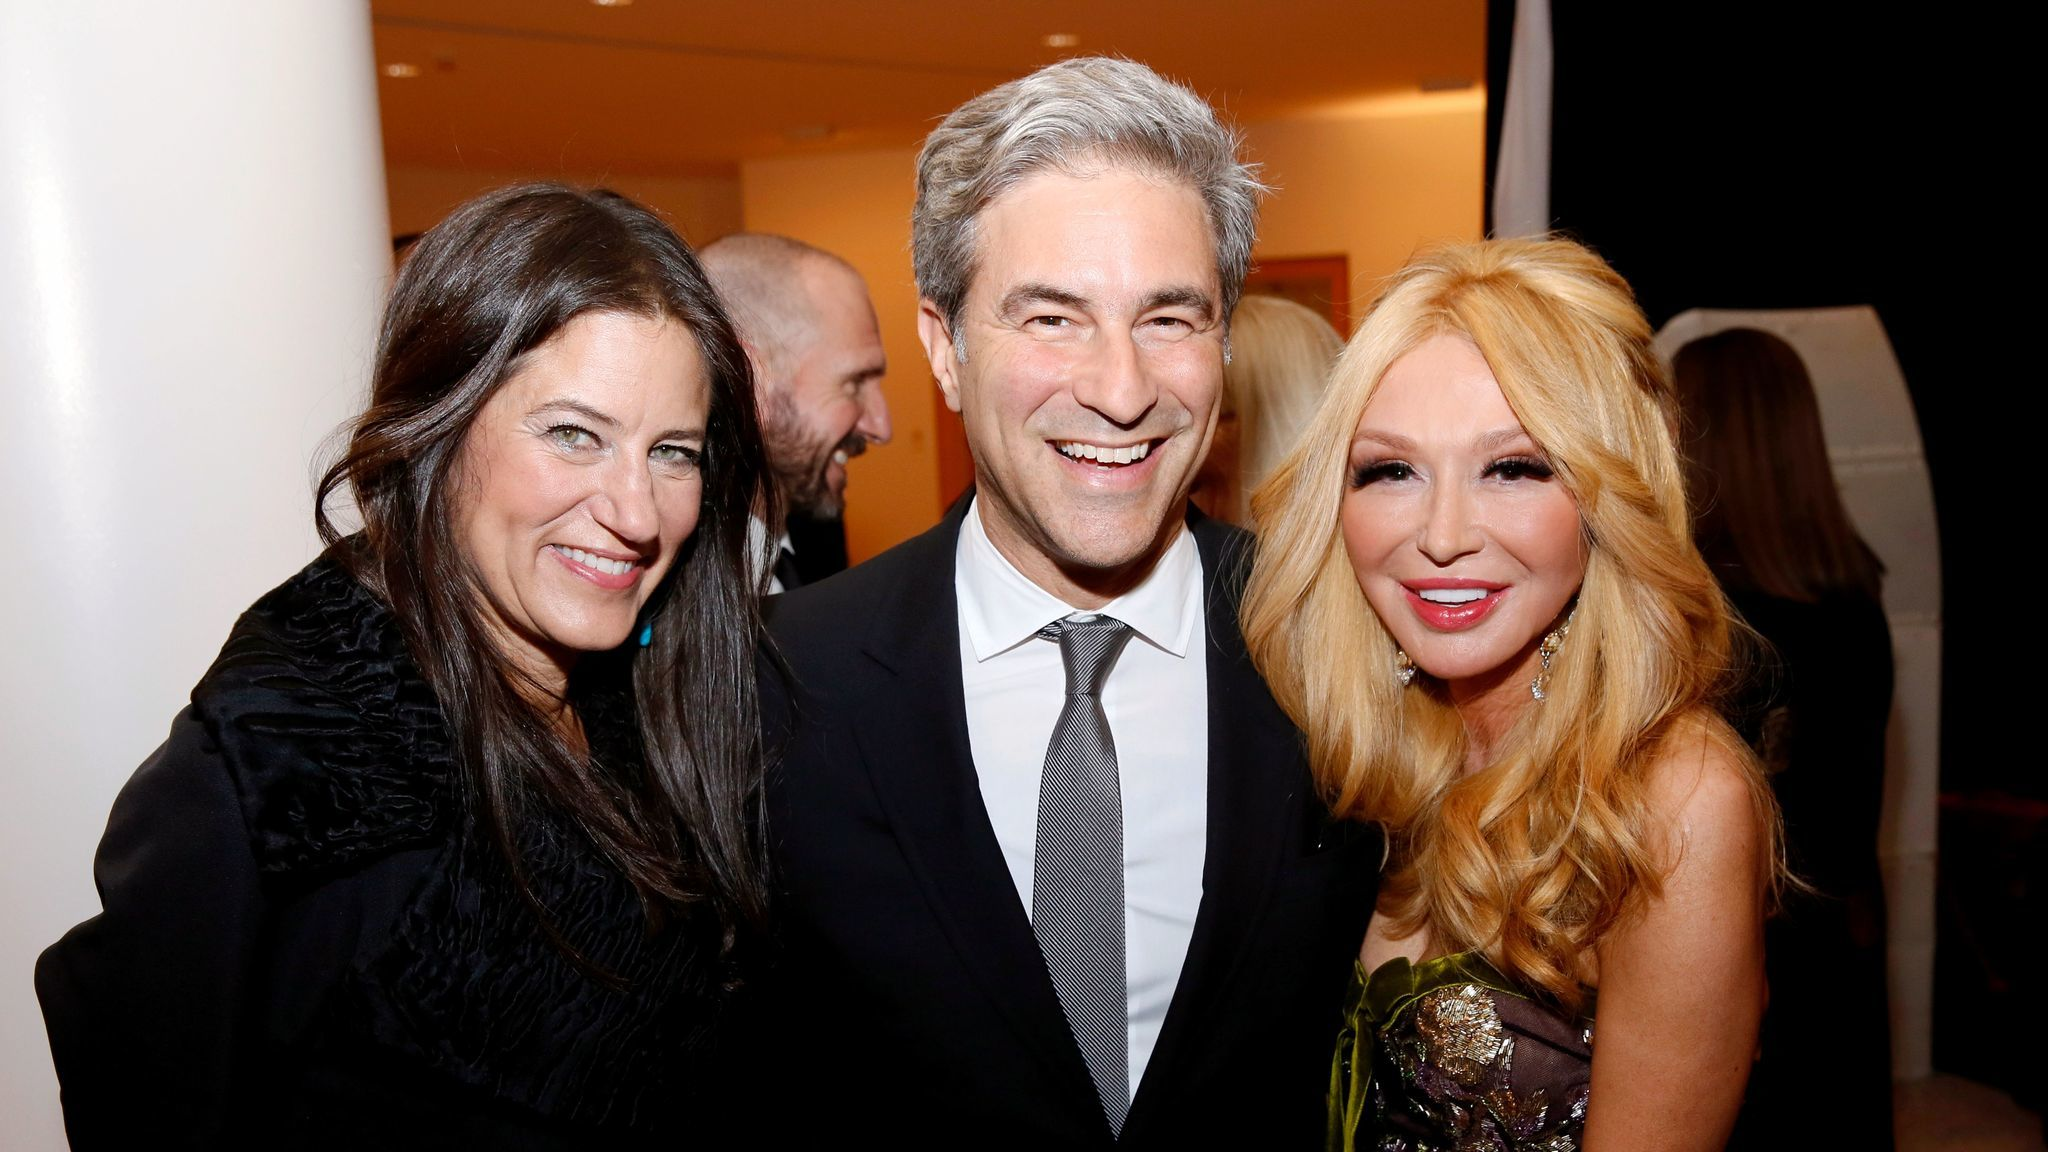 Katherine Ross, left, Michael Govan and Elizabeth Segerstrom at the South Coast Plaza Art, Excellence + Friendship, an evening with the Mariinsky Theatre Orchestra at Segestrom Center for the Arts on Oct. 30.